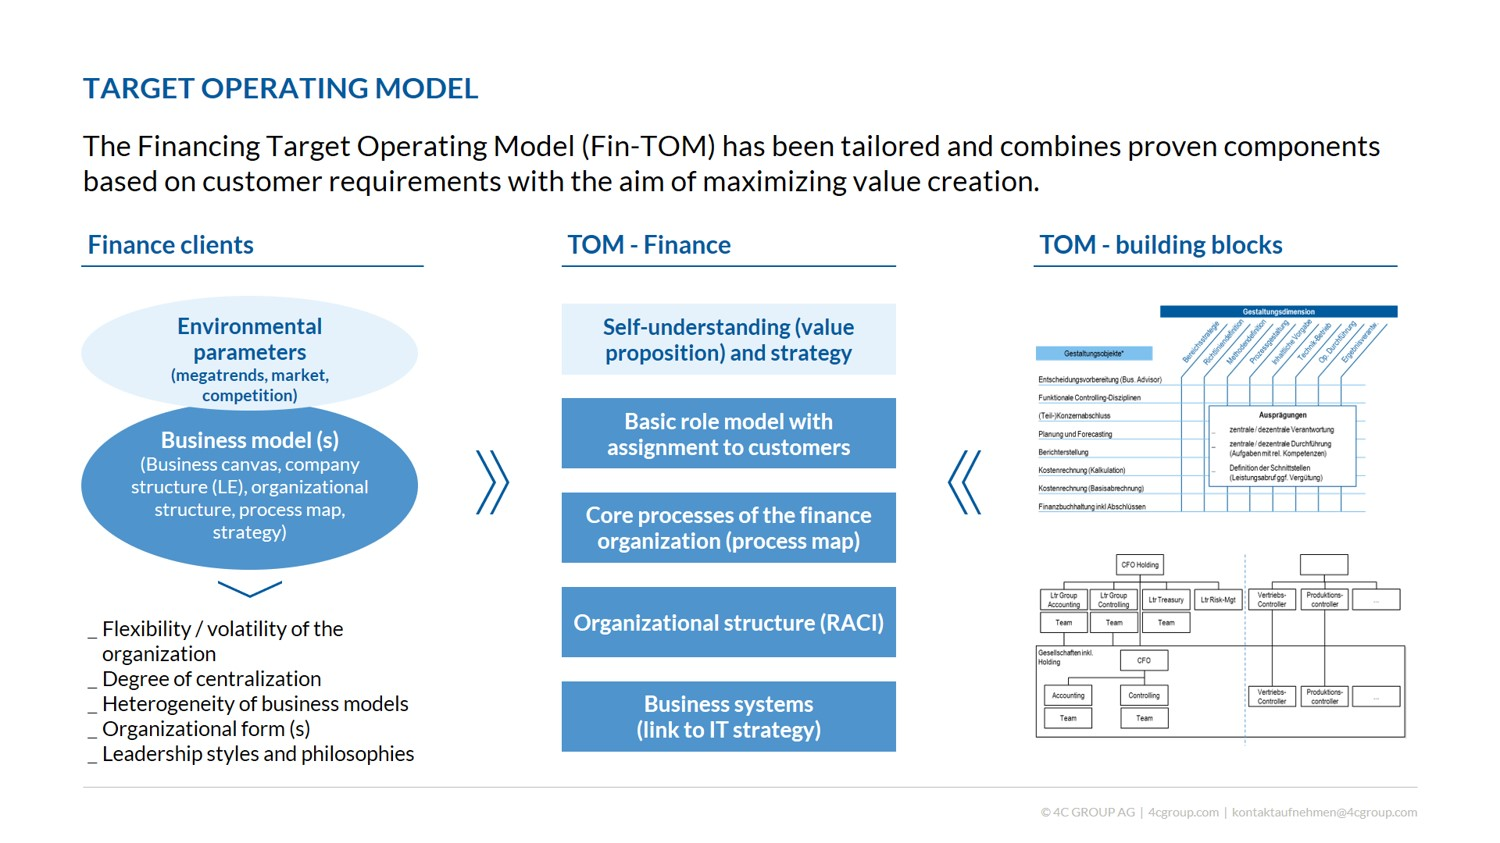 Target Operating Model Evolution Of Finance Office